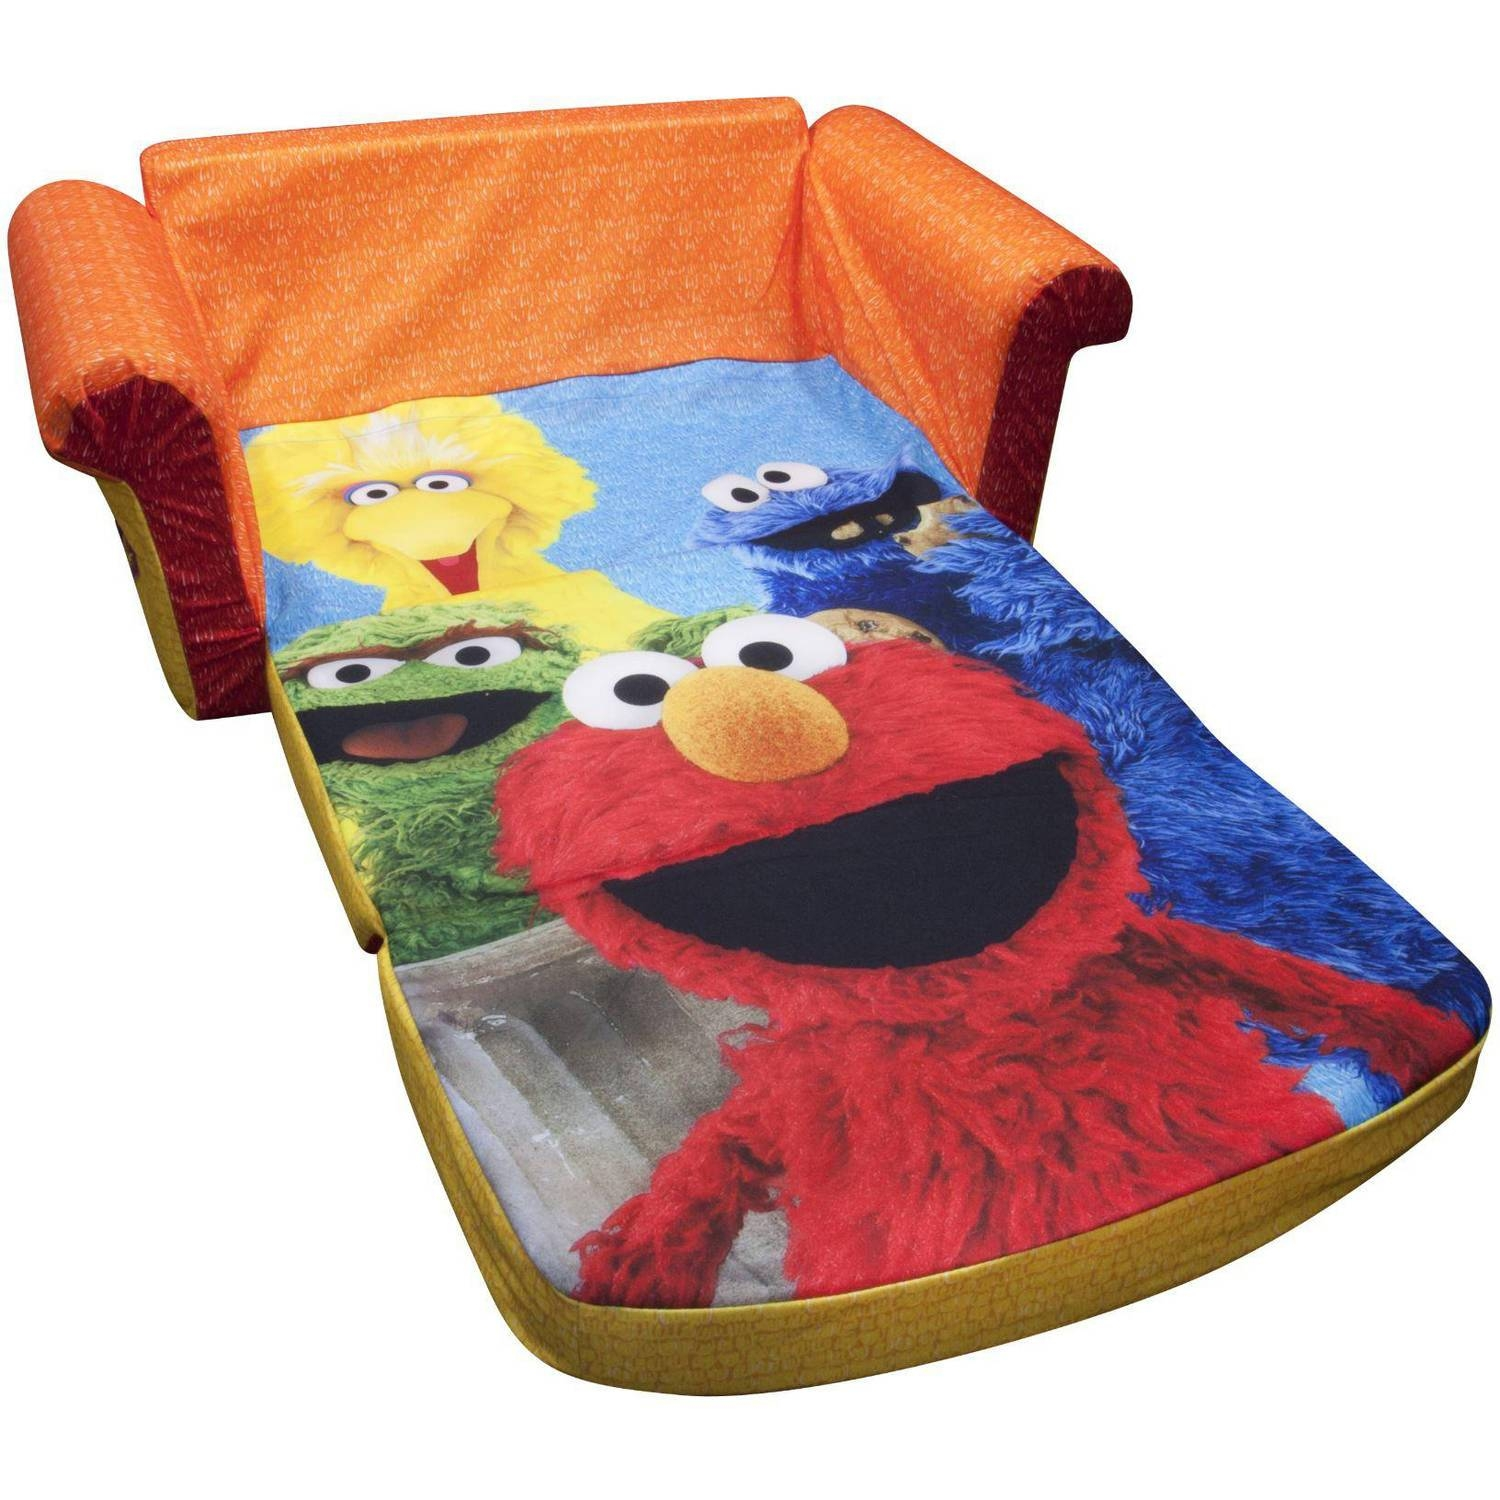 Marshmallow 2-In-1 Flip Open Sofa, Sesame Street's Elmo - Walmart pertaining to Flip Out Sofa Bed Toddlers (Image 14 of 30)